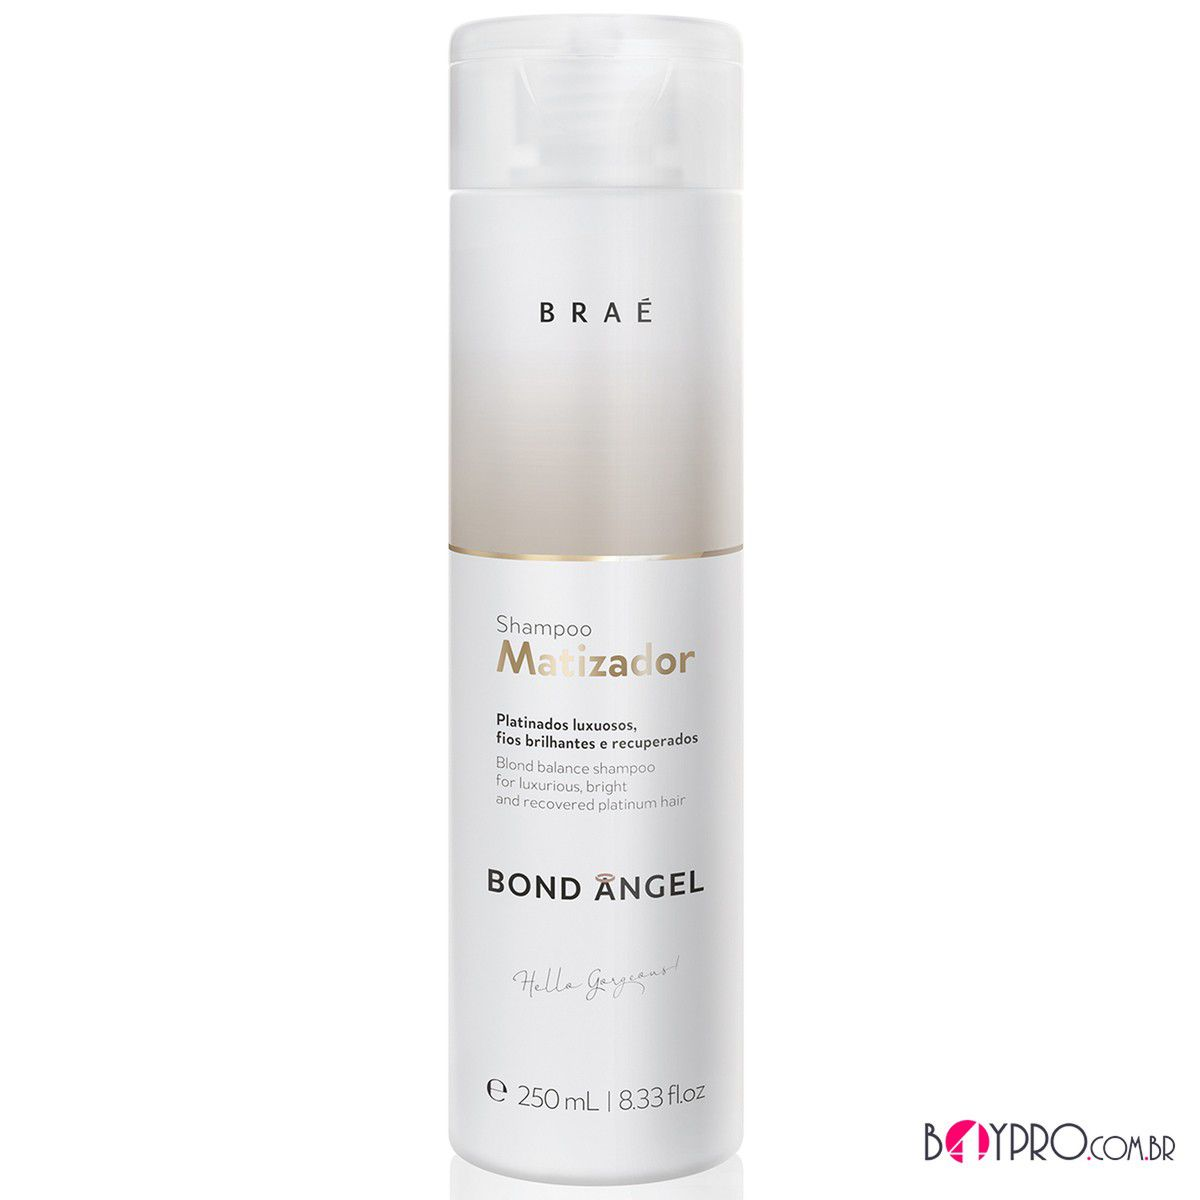 SHAMPOO MATIZADOR BOND ANGEL BRAÉ 250ML